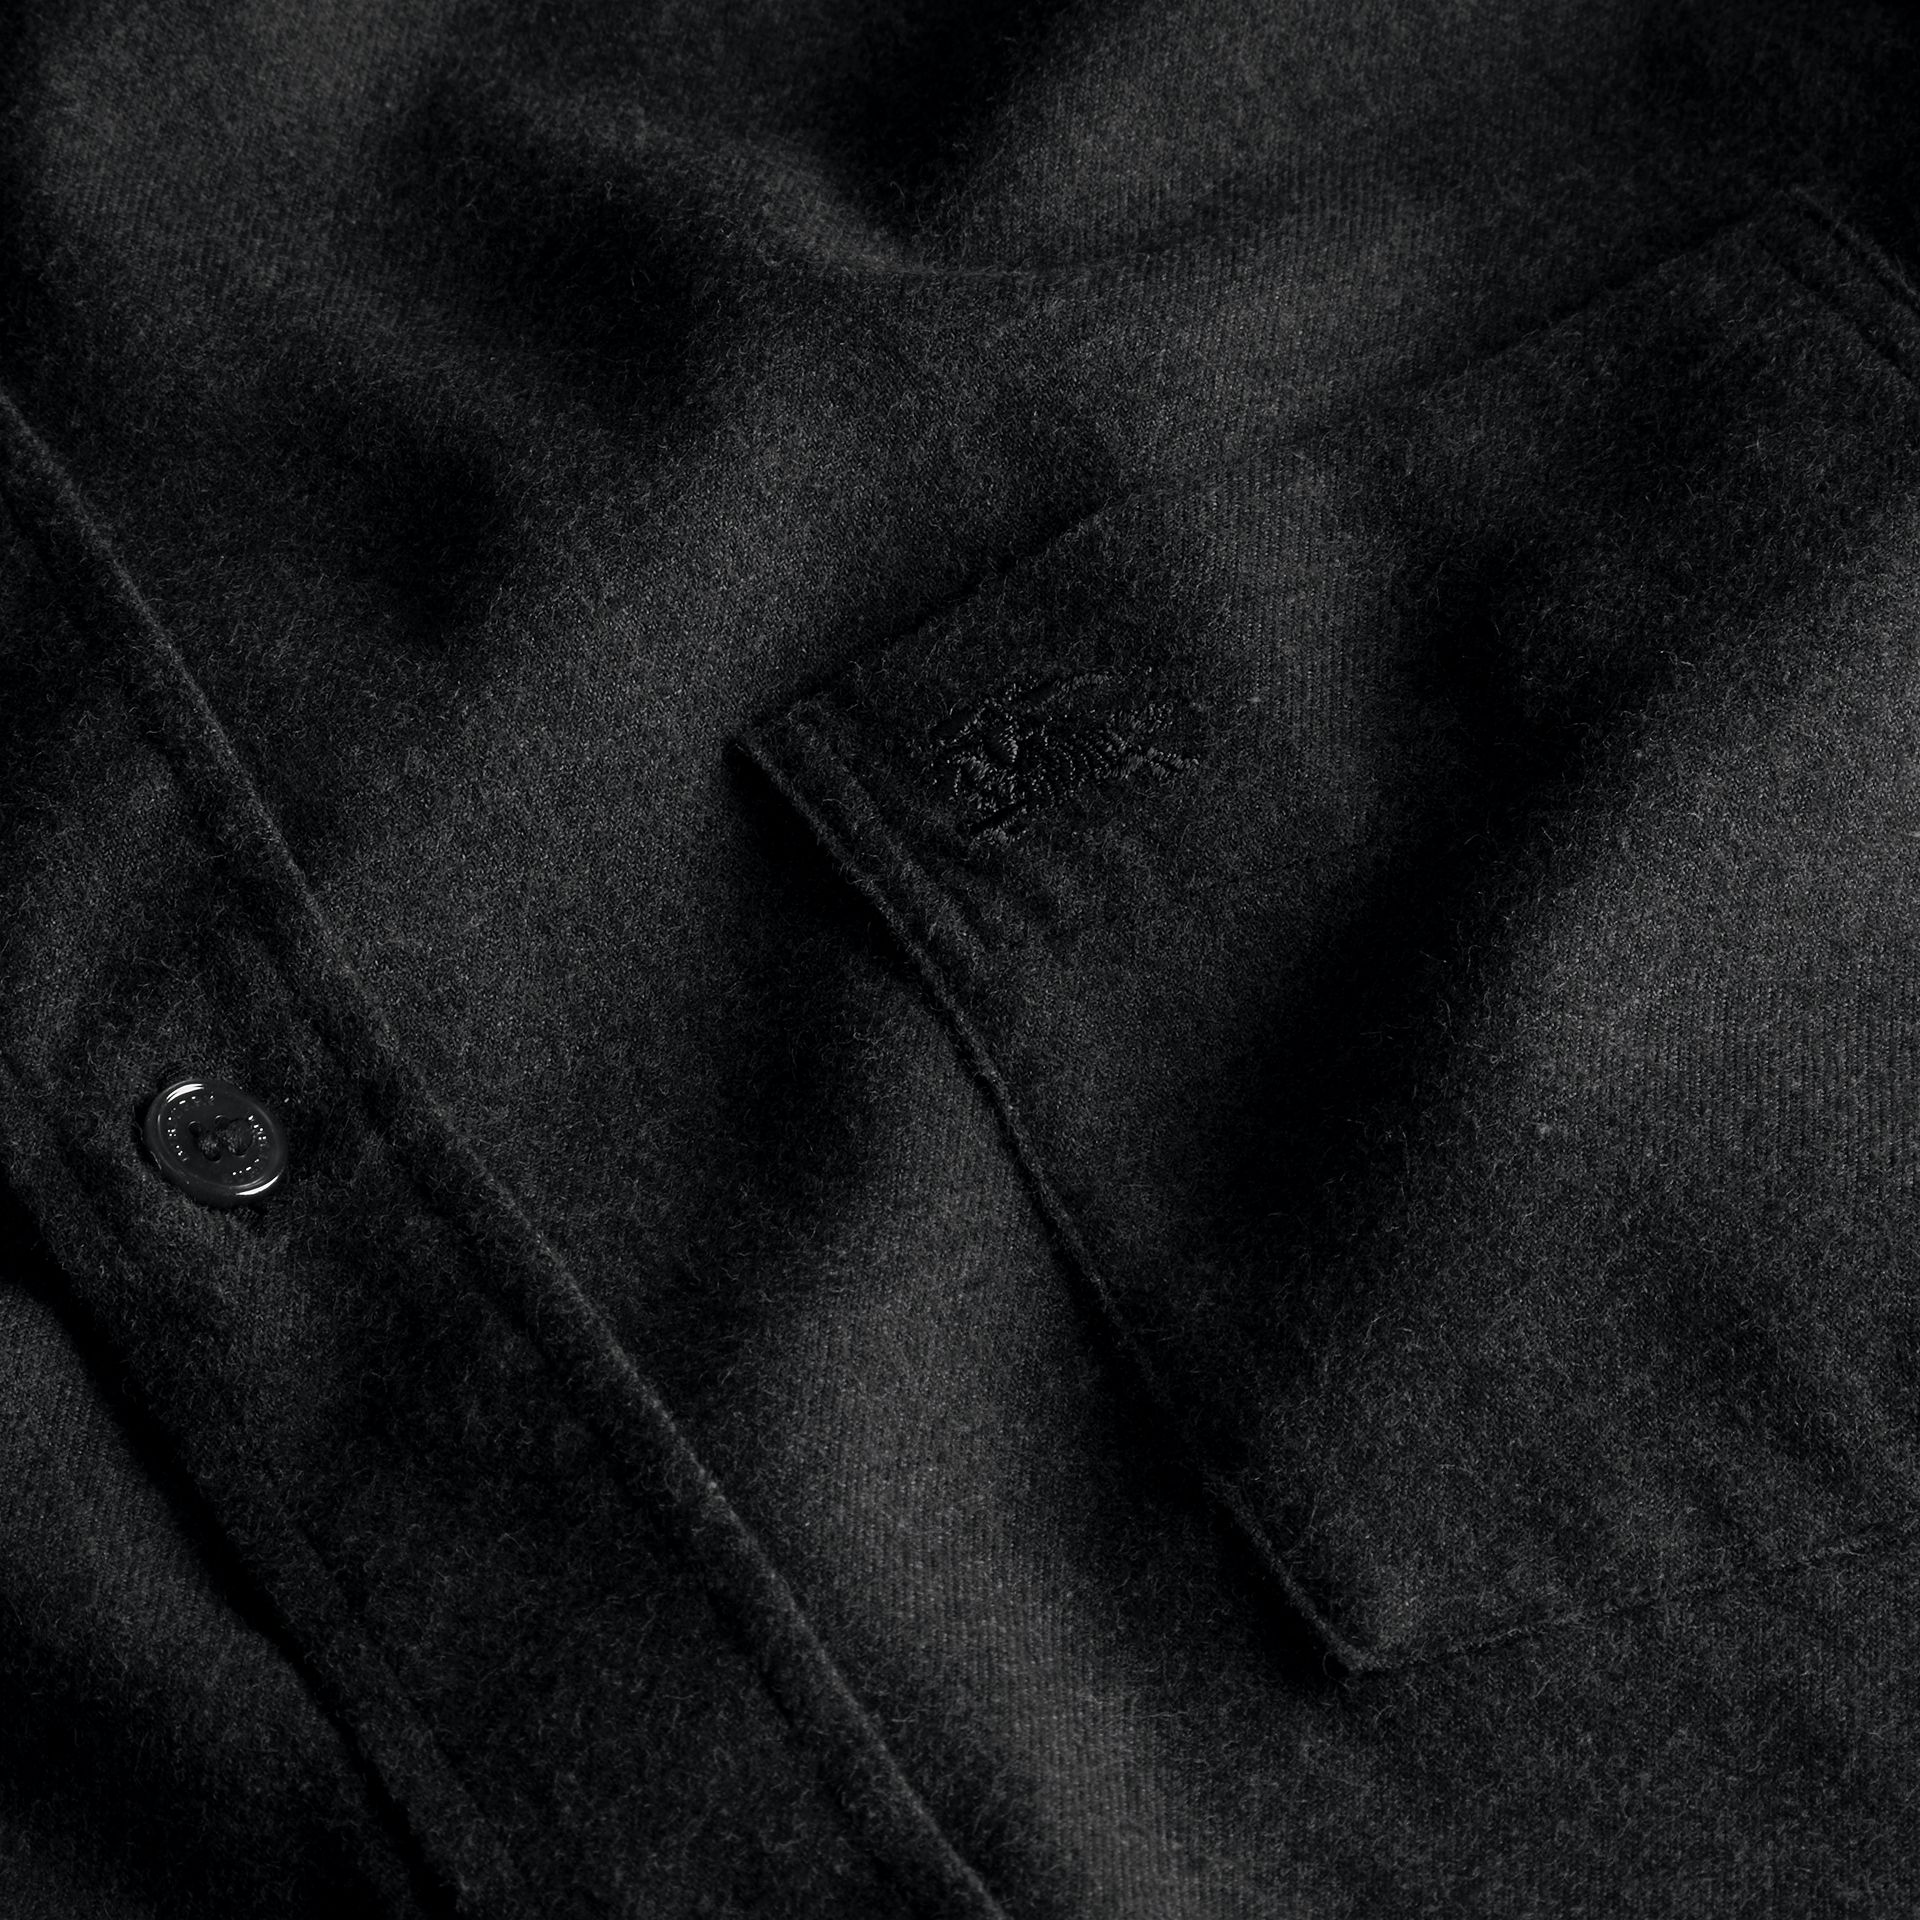 Check Detail Cotton Flannel Shirt Charcoal Melange - gallery image 2